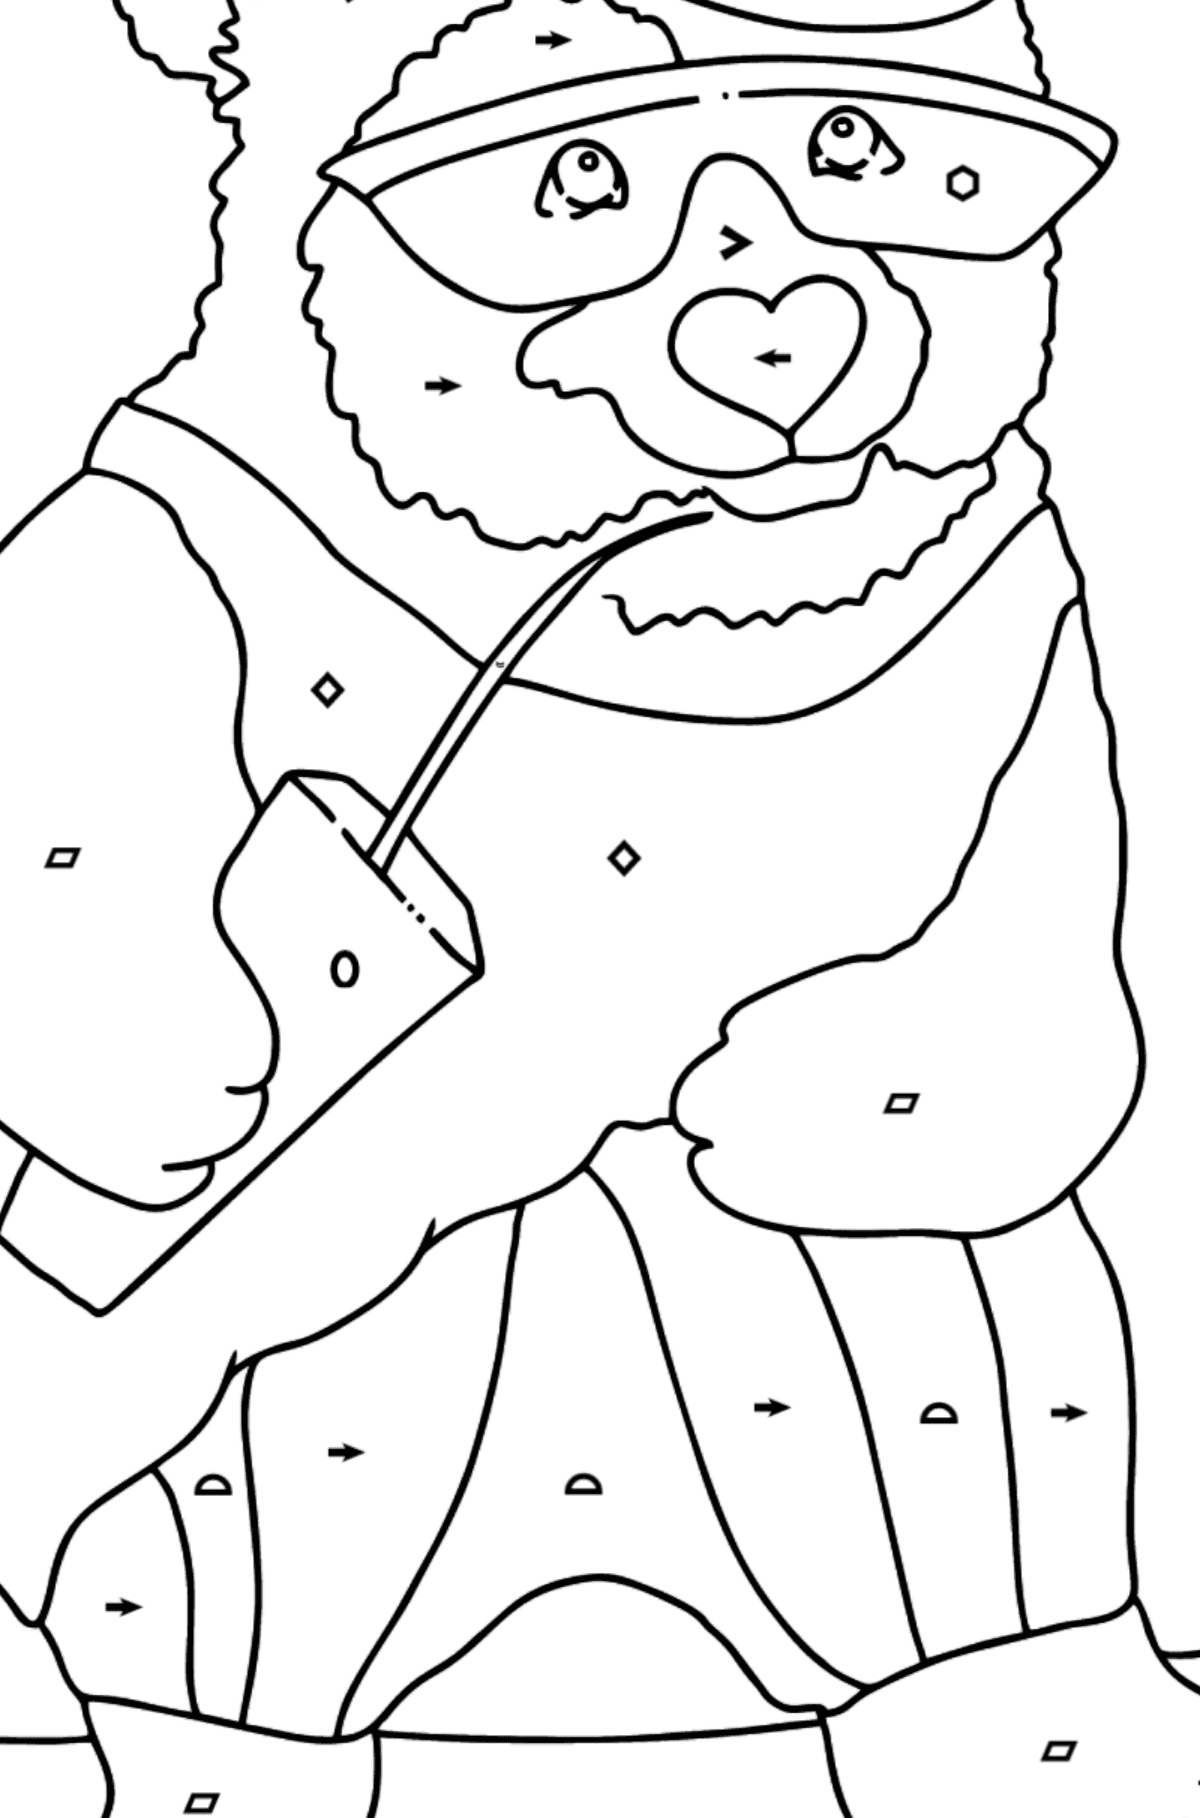 Coloring Page - A Panda is Learning to Ride a Skateboard - Coloring by Symbols and Geometric Shapes for Kids